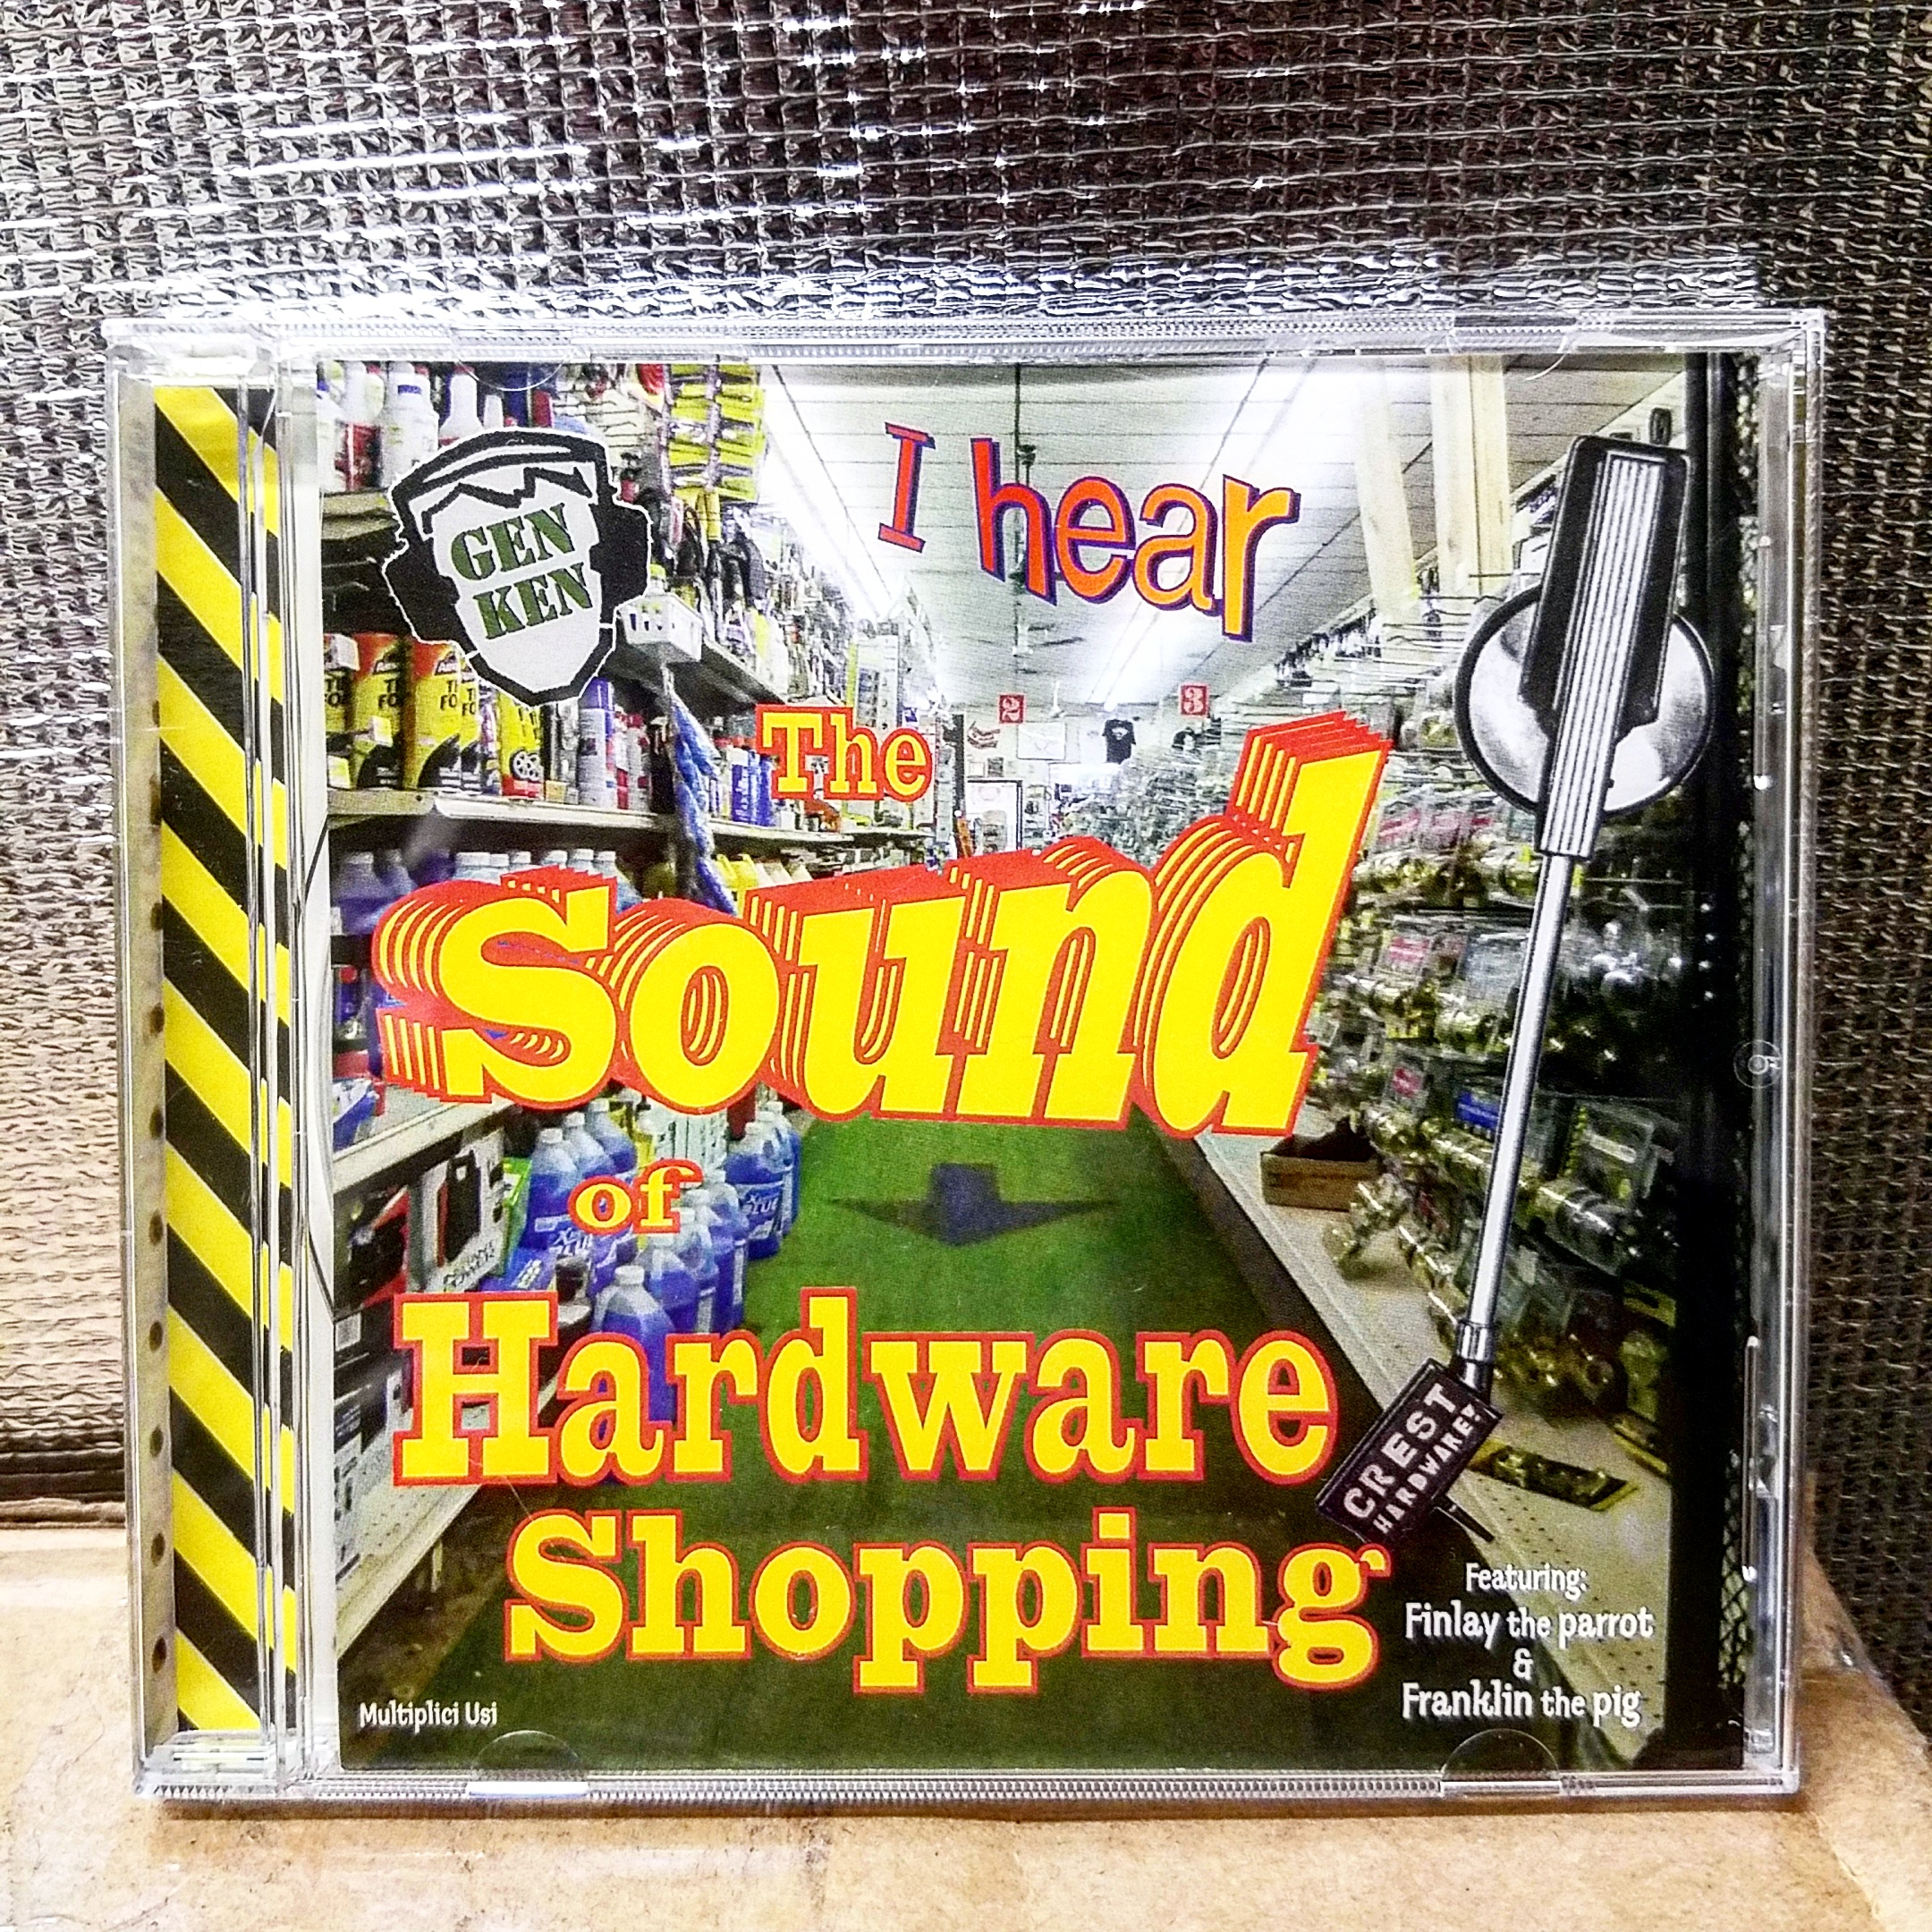 the sound of hardware shopping